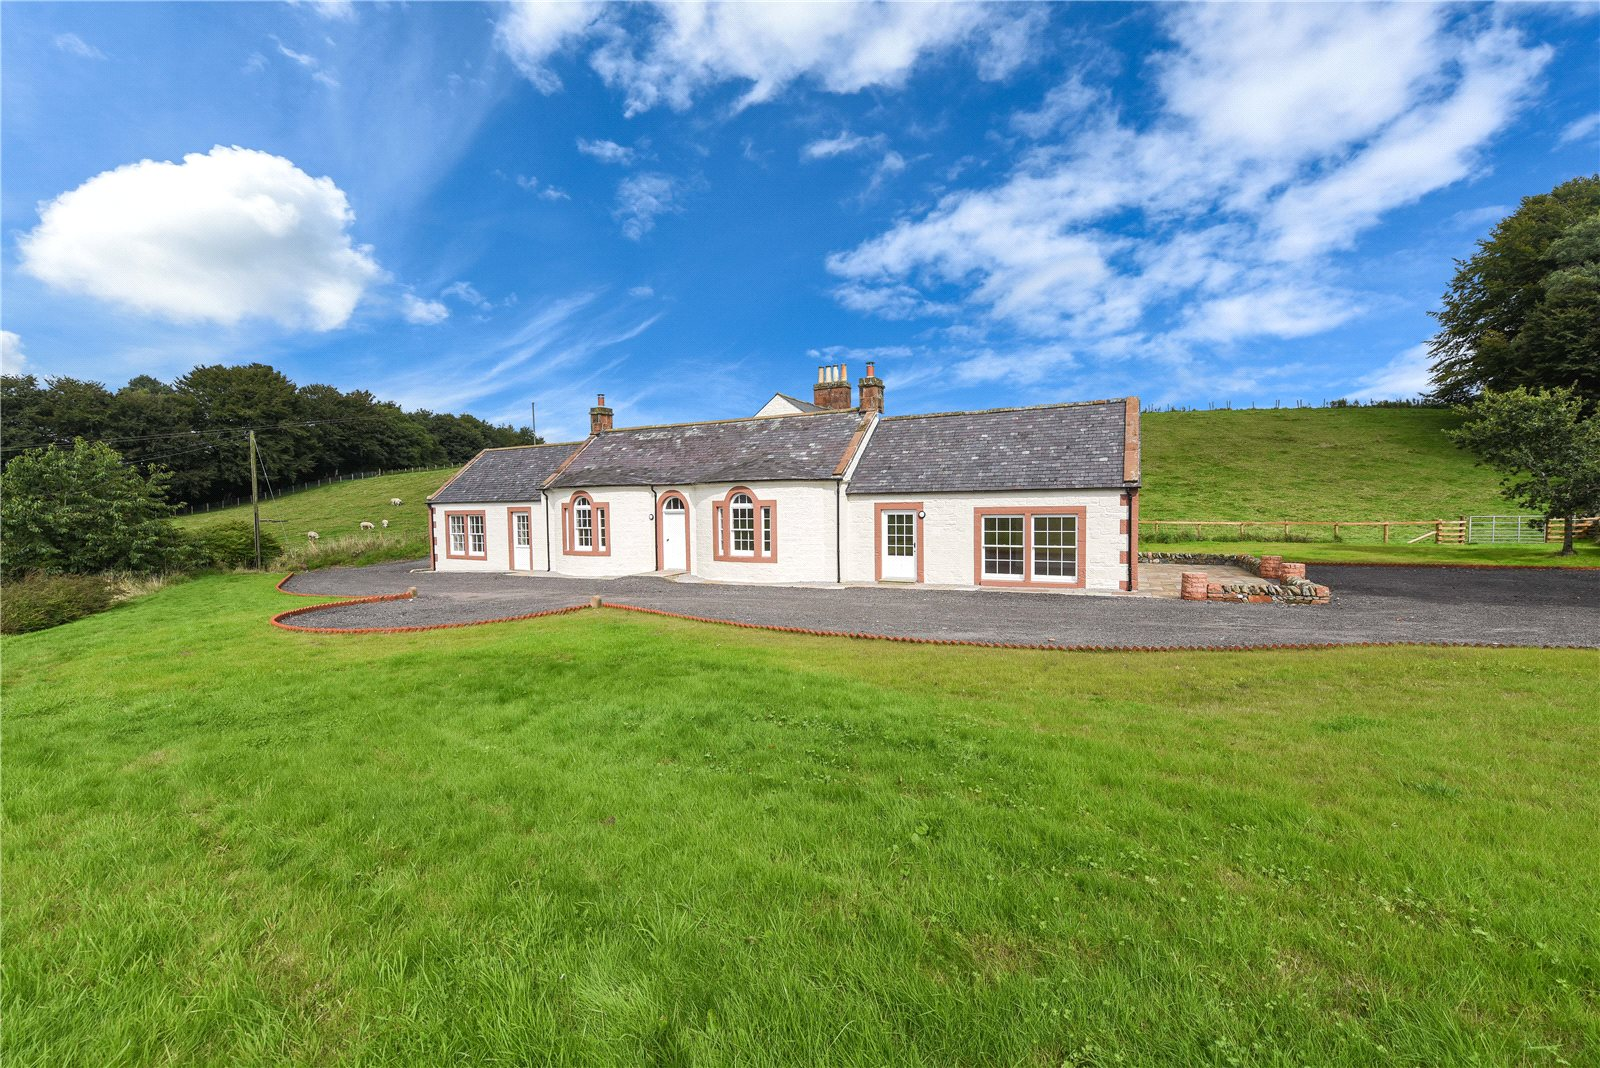 4 Bedrooms Detached House for sale in Rosebank Cottage, Thornhill, Dumfries and Galloway, DG3